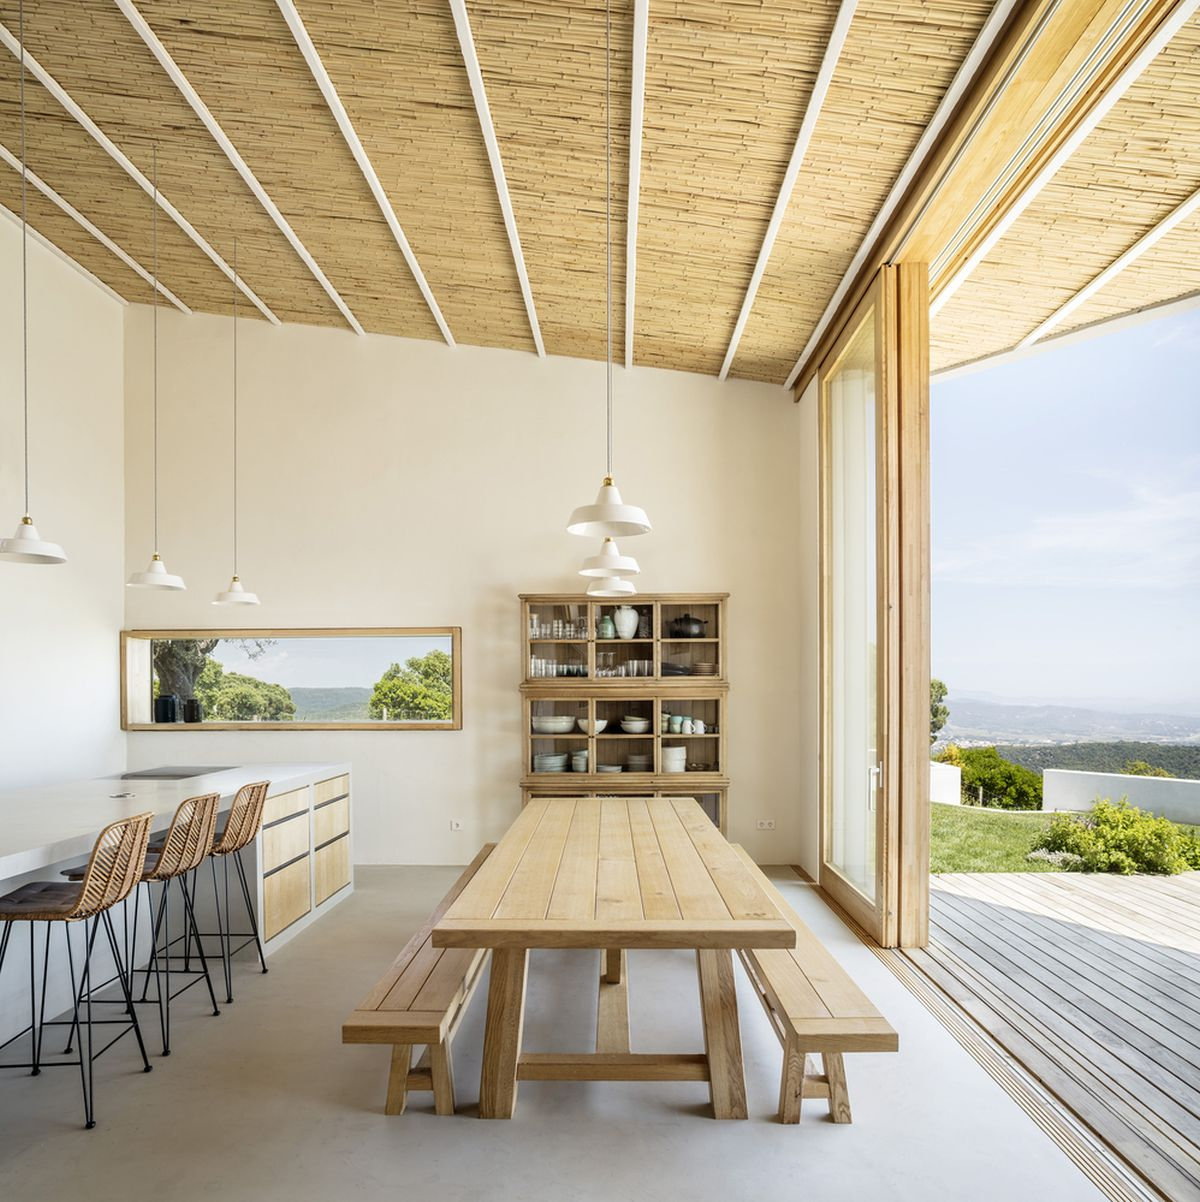 The kitchen and dining area share an open plan and are directly connected to the outdoors